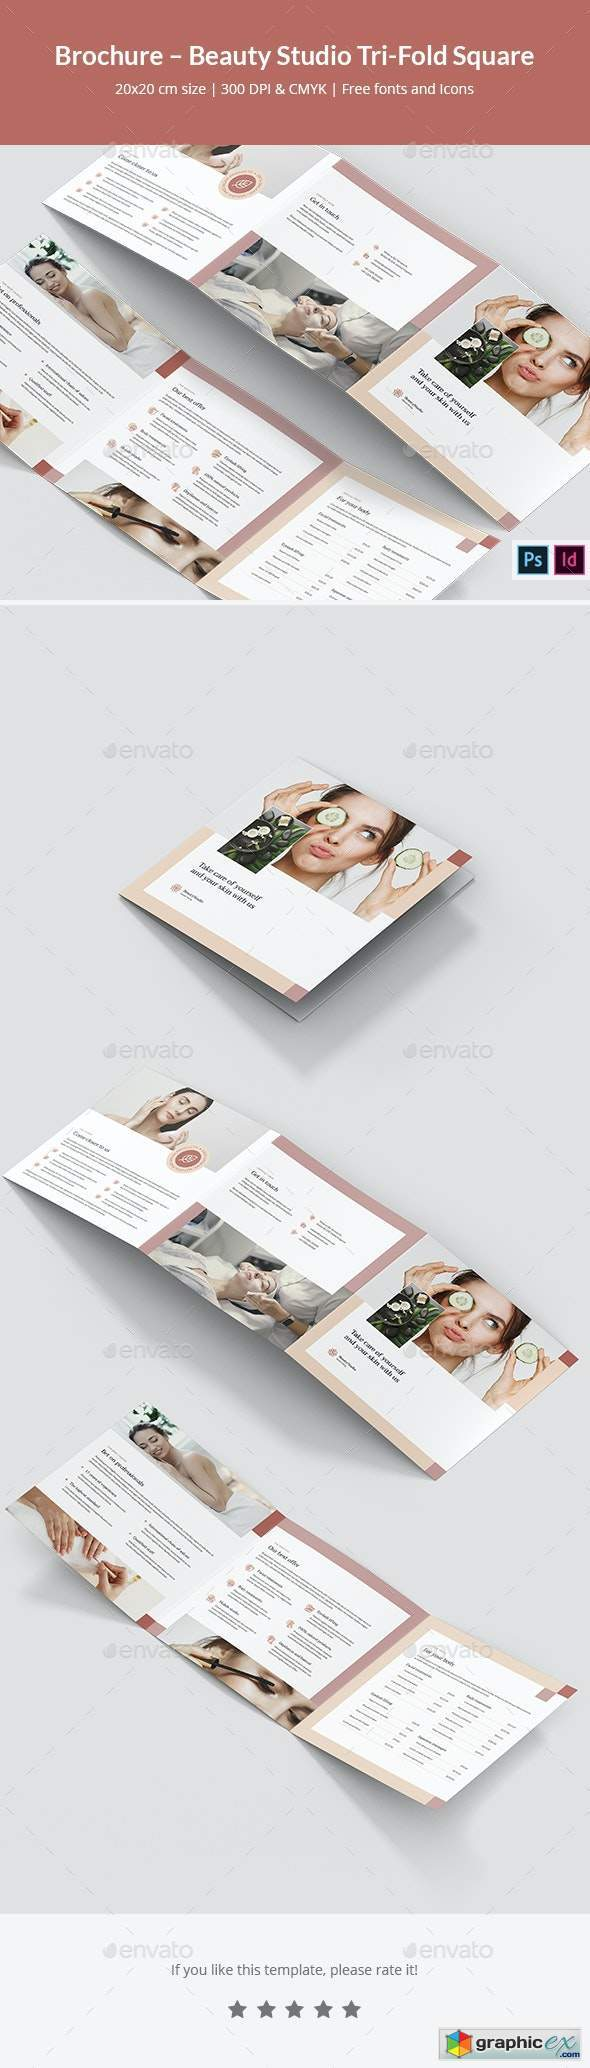 Brochure – Beauty Studio Tri-Fold Square